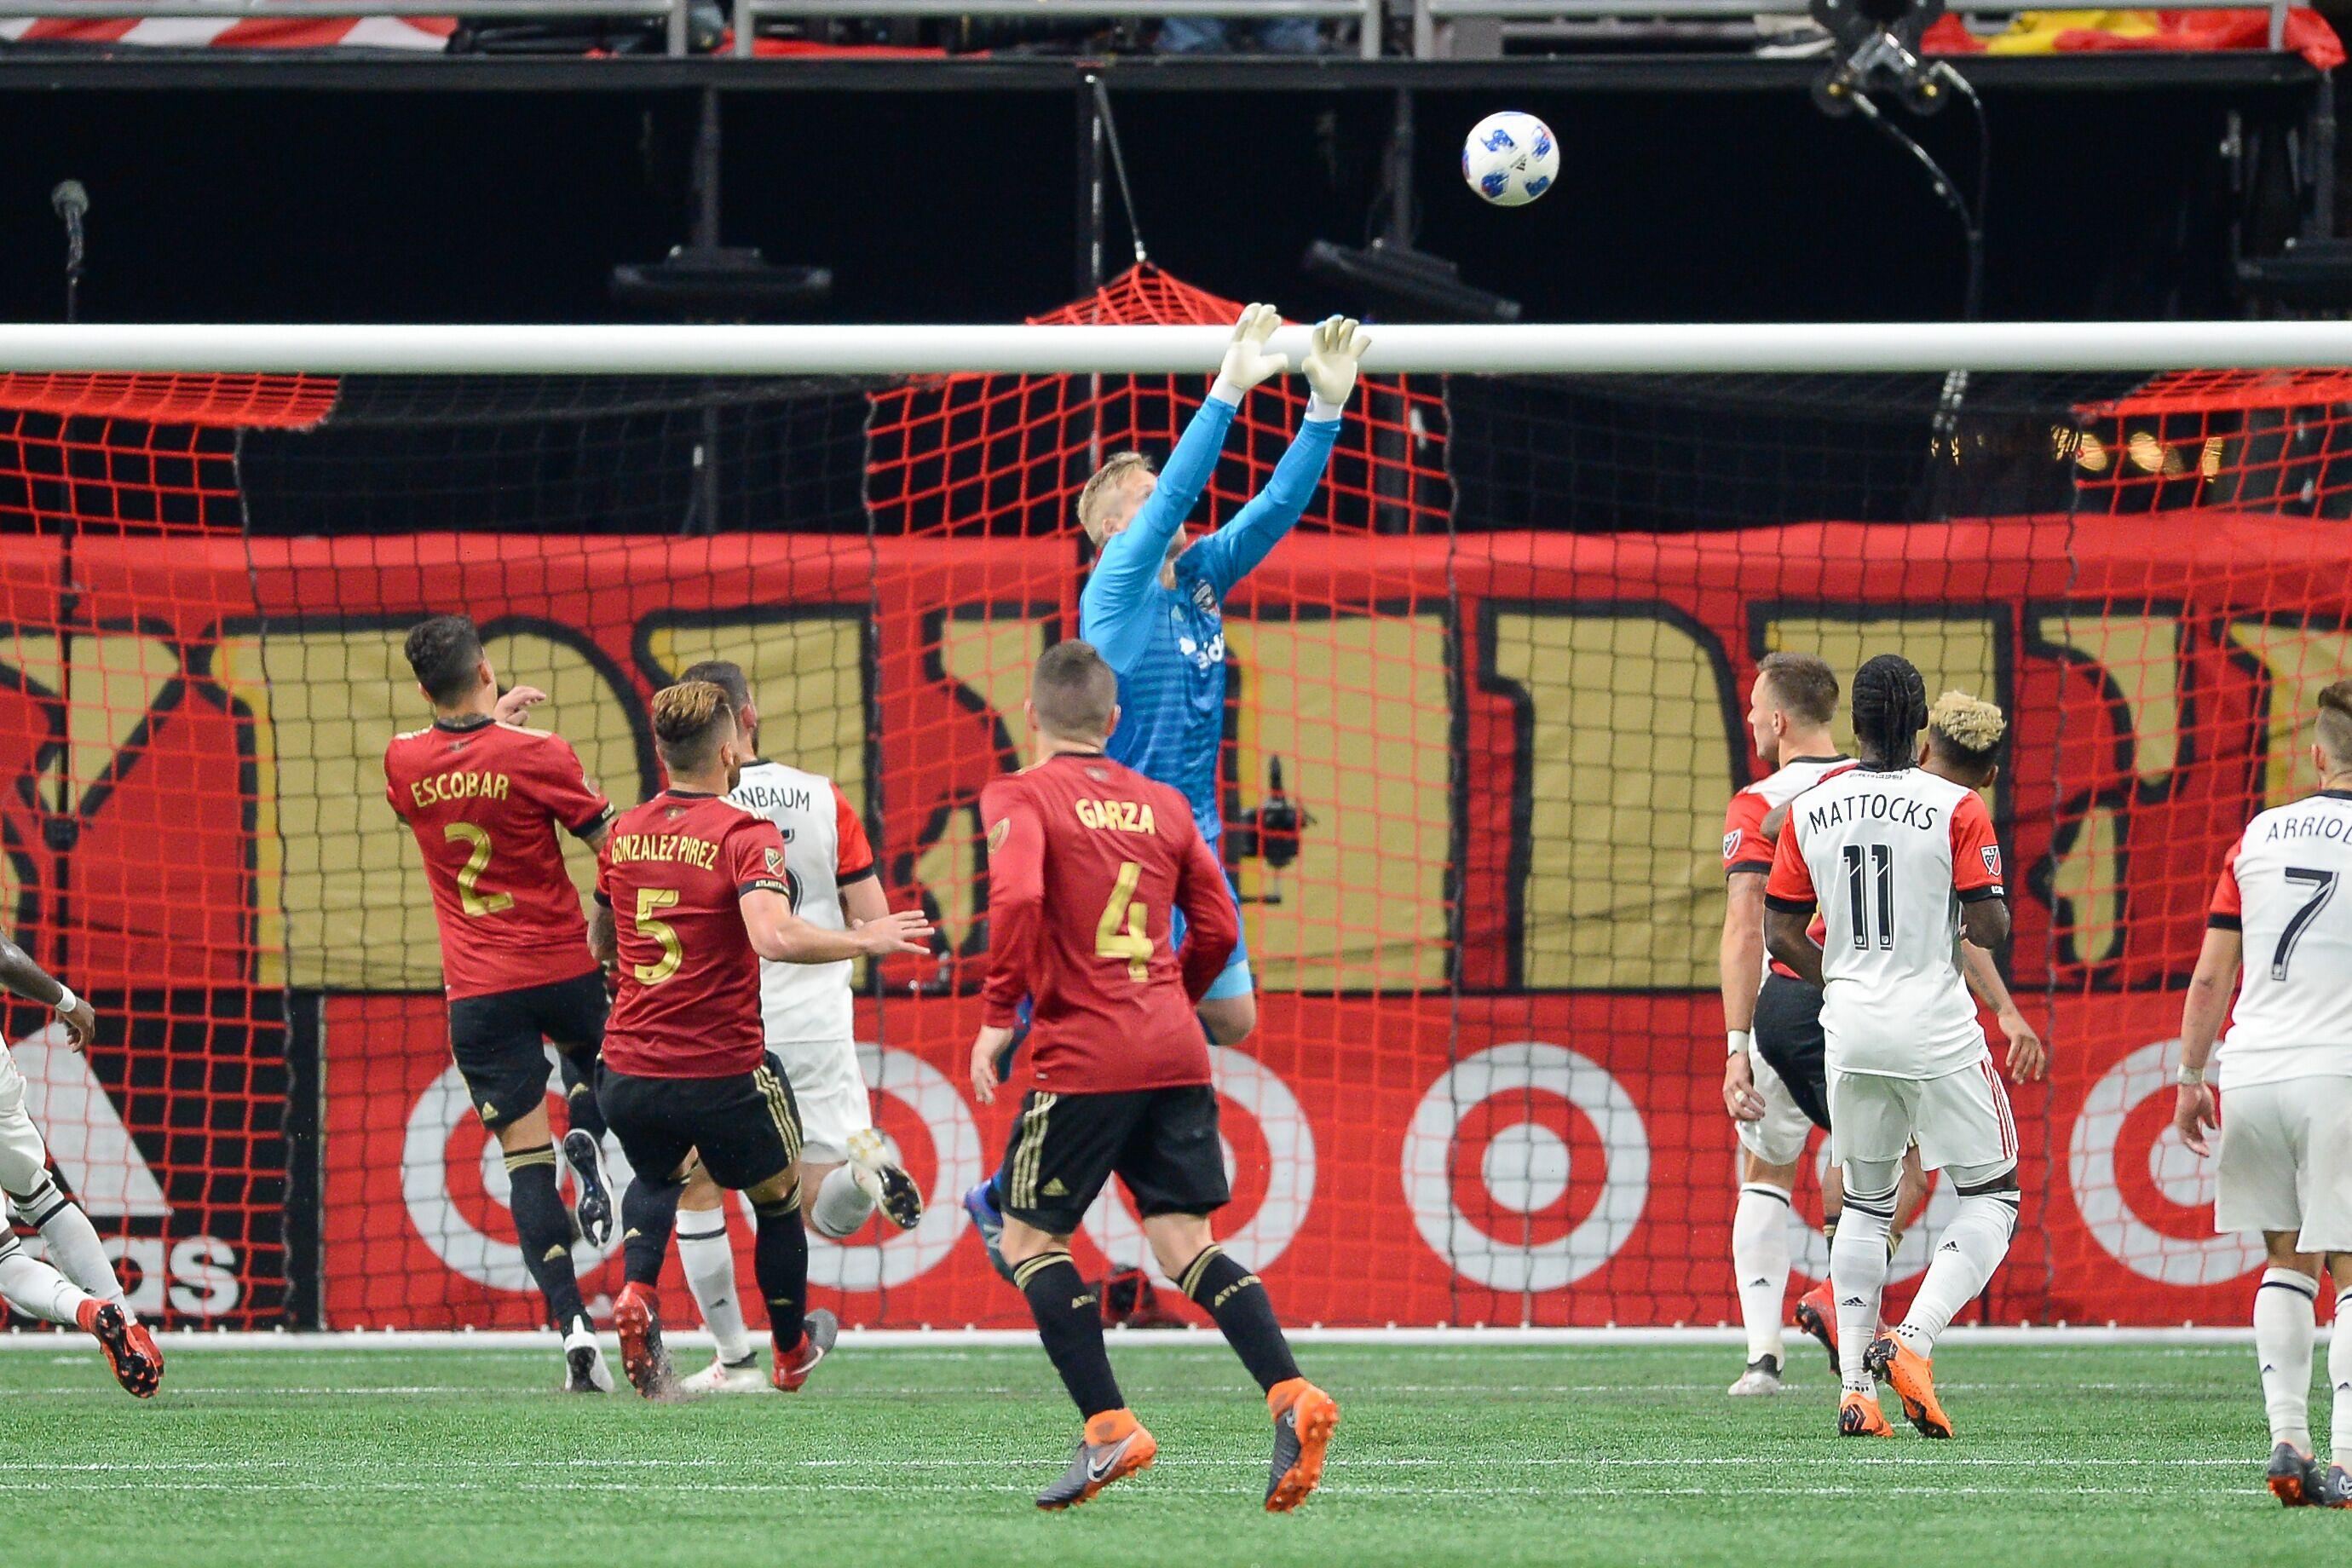 930690712-soccer-mar-11-mls-dc-united-at-atlanta-united-fc.jpg